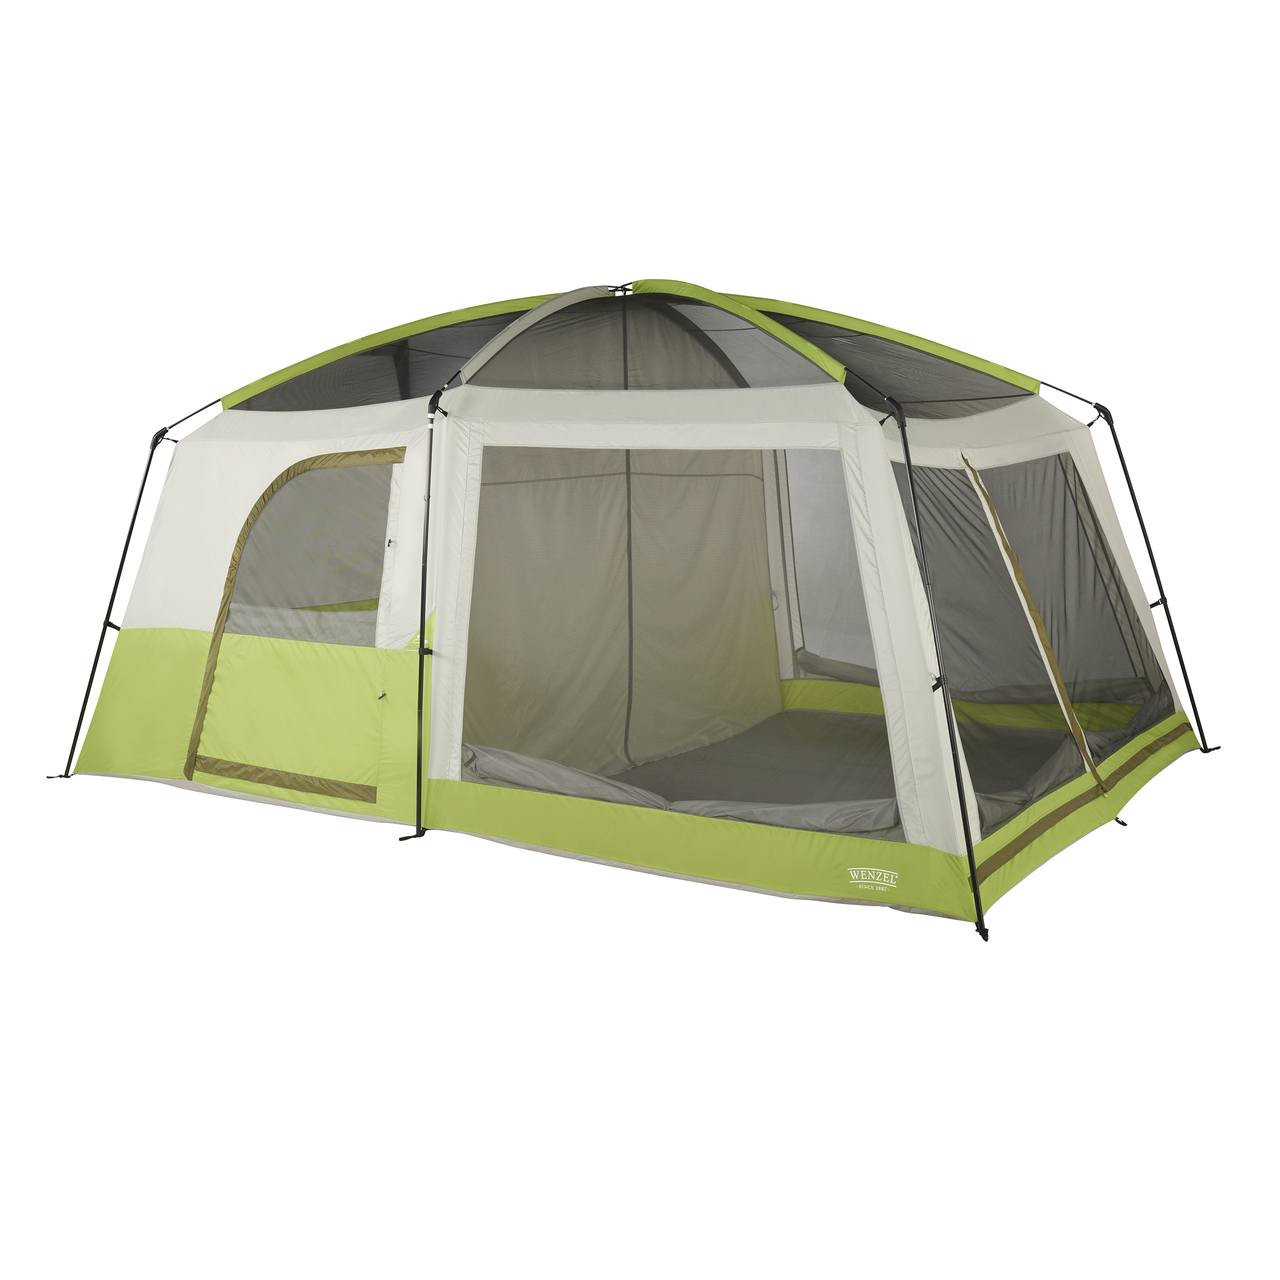 Wenzel Eldorado 10 tent, light green and gray, completely set up with the rain fly off, screen door covers rolled down with the inside tent doors set up